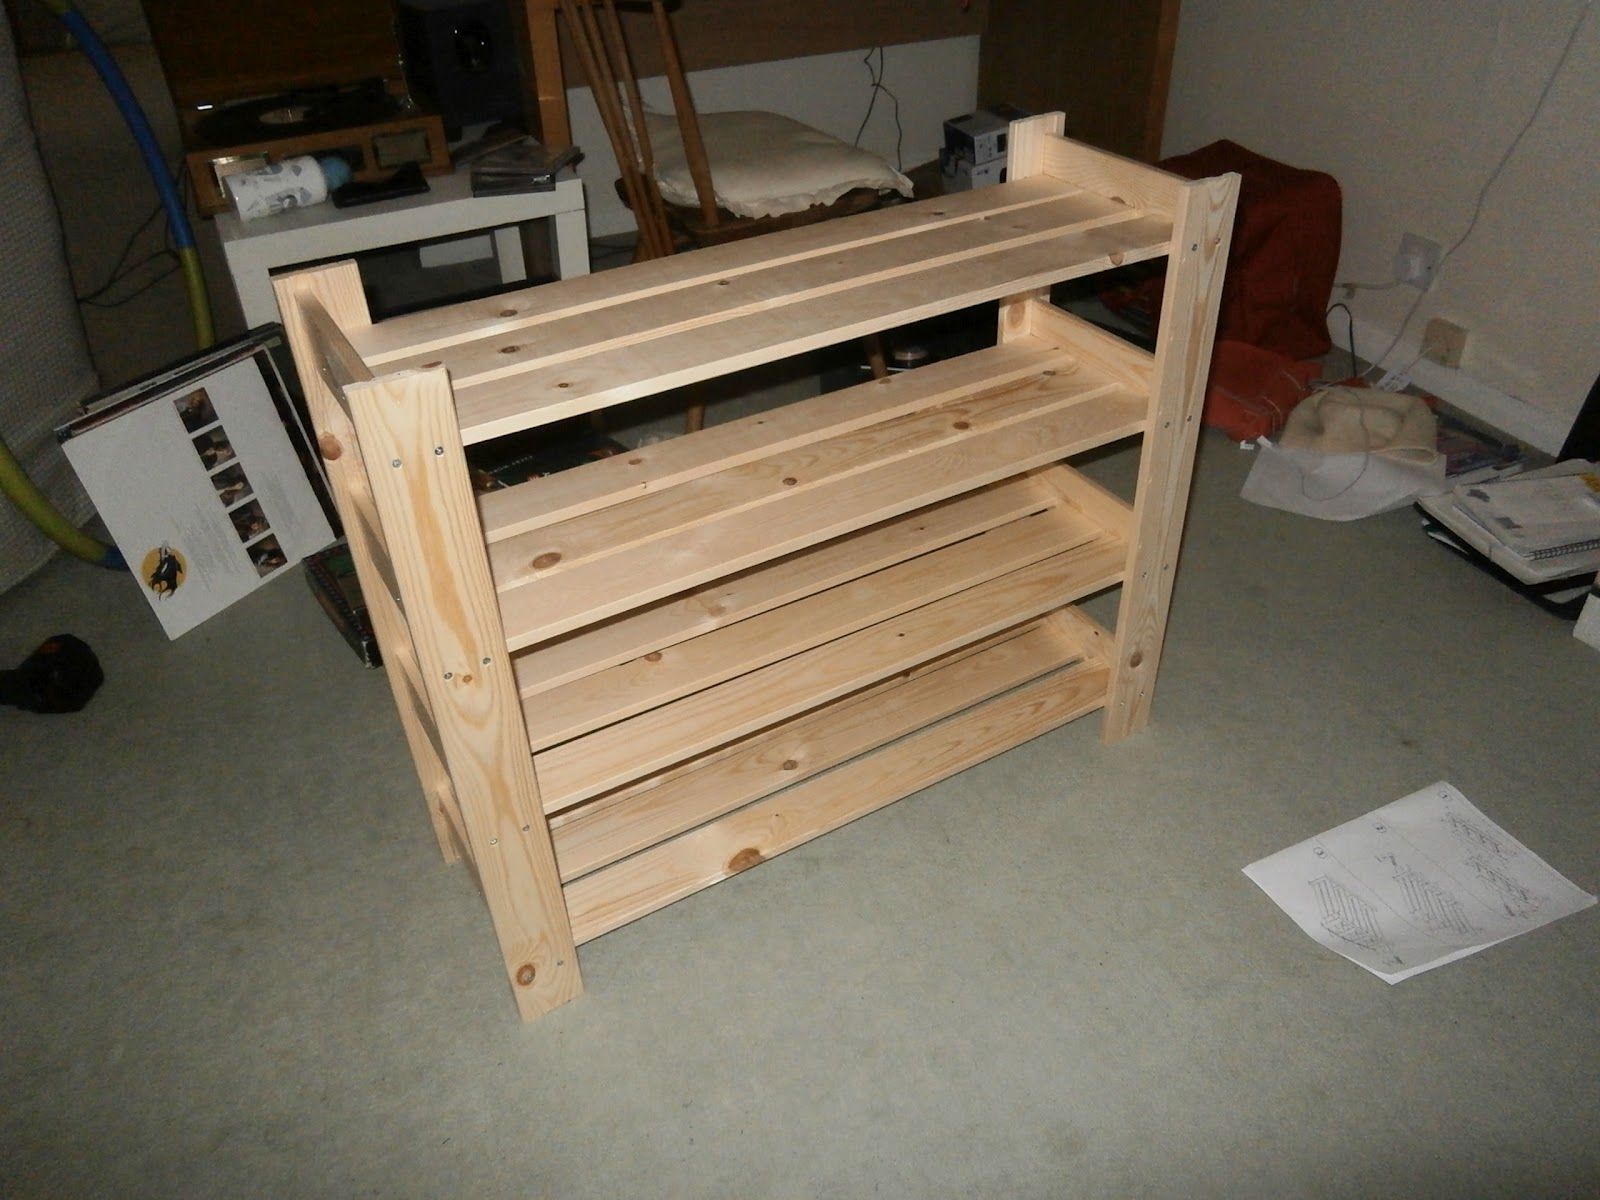 Free Woodworking Plans For A Shoe Rack Easy Build